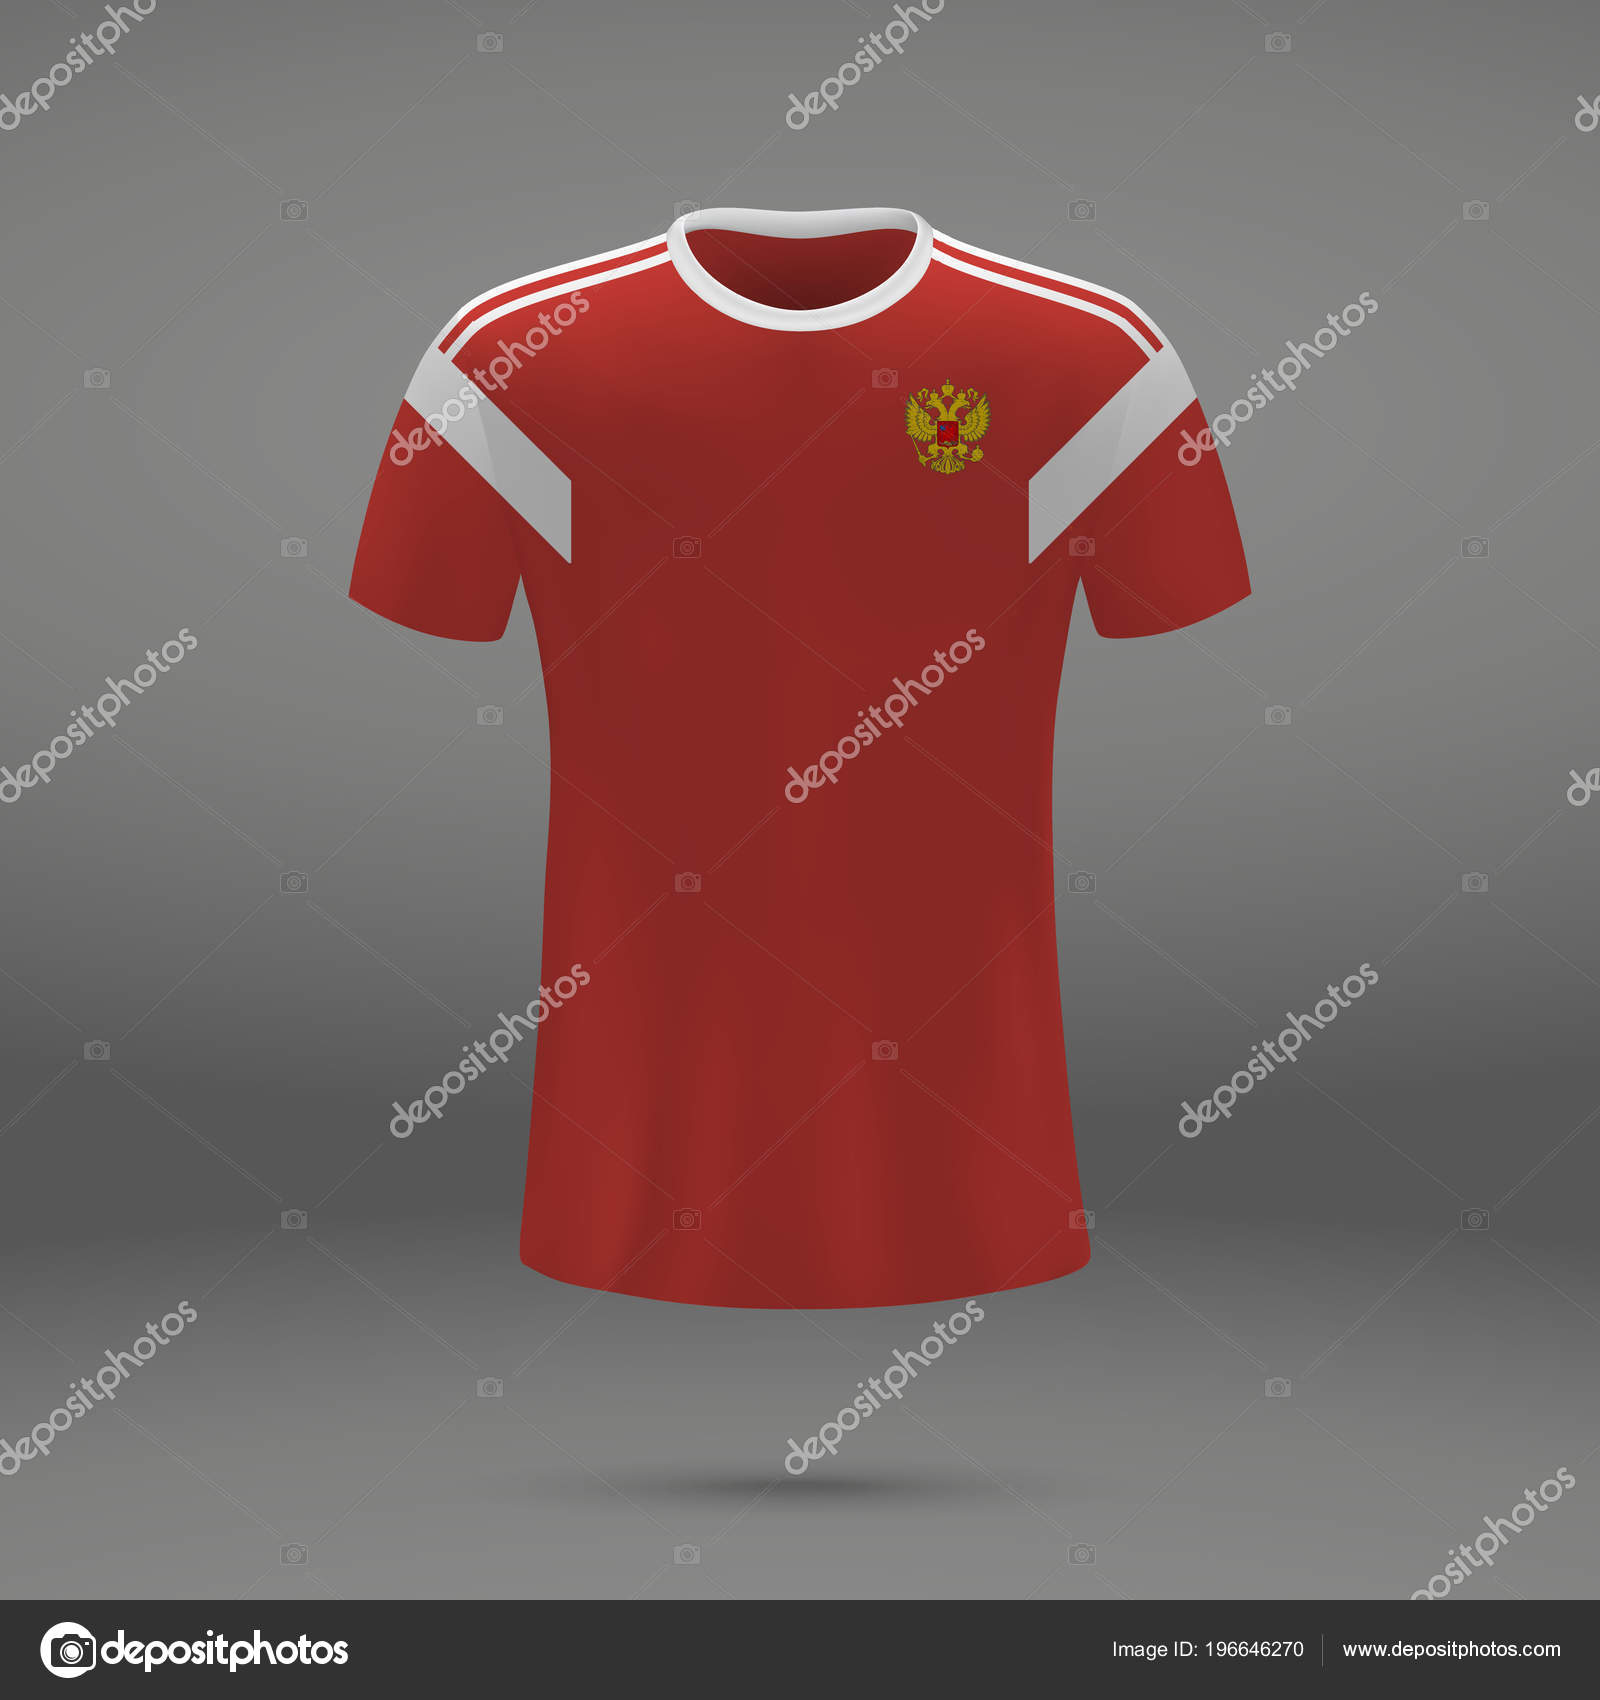 Football Kit Russia 2018 Shirt Template Soccer Jersey Vector Illustration —  Stock Vector 94be8d982